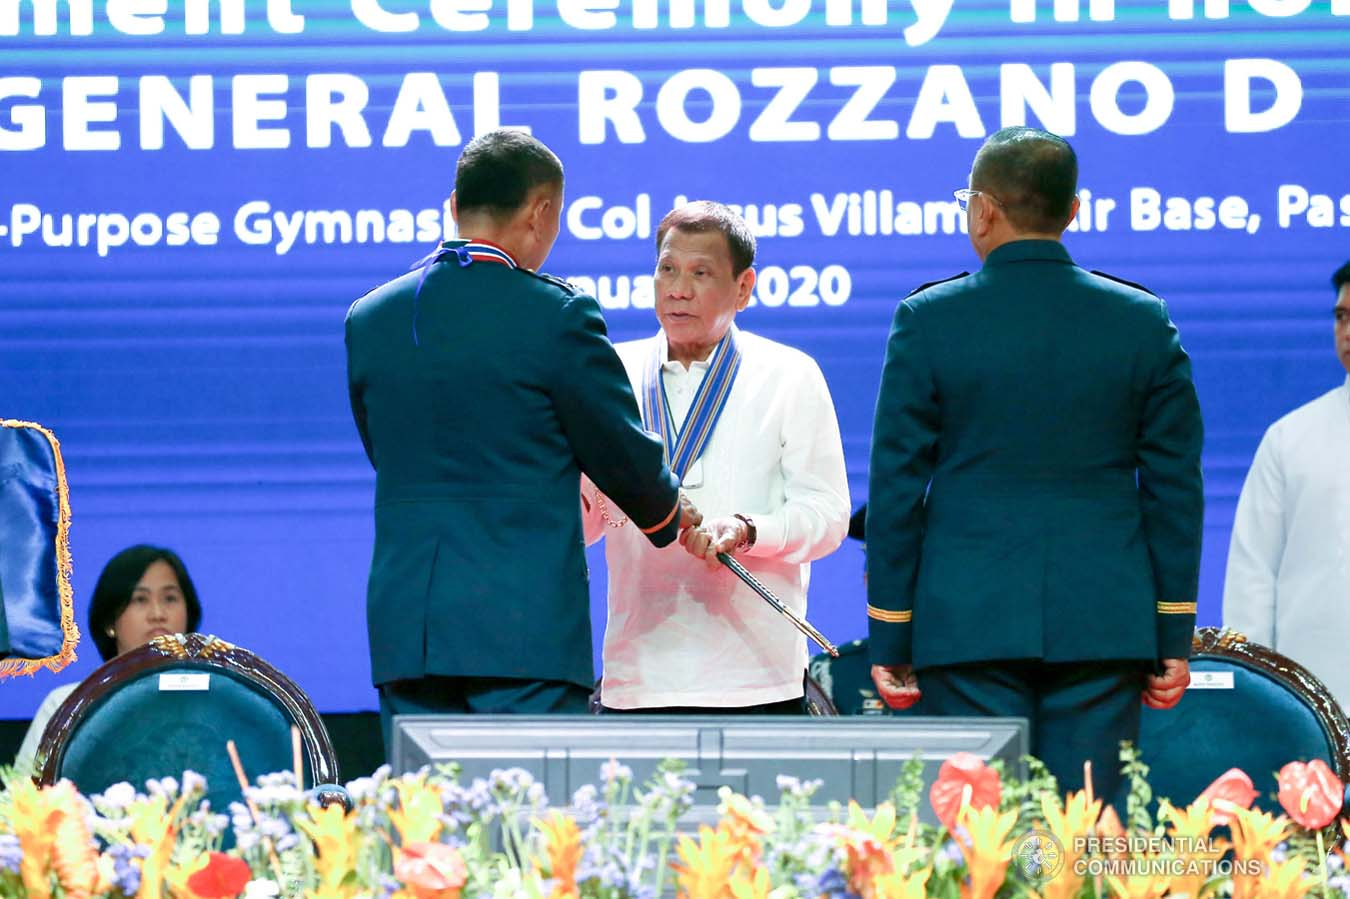 President Rodrigo Roa Duterte receives the command saber from outgoing Philippine Air Force (PAF) Commanding General Lieutenant General Rozzano Briguez during the PAF Change of Command ceremony at the Col. Jesus Villamor Air Base in Pasay City on January 16, 2020. KARL NORMAN ALONZO/PRESIDENTIAL PHOTO